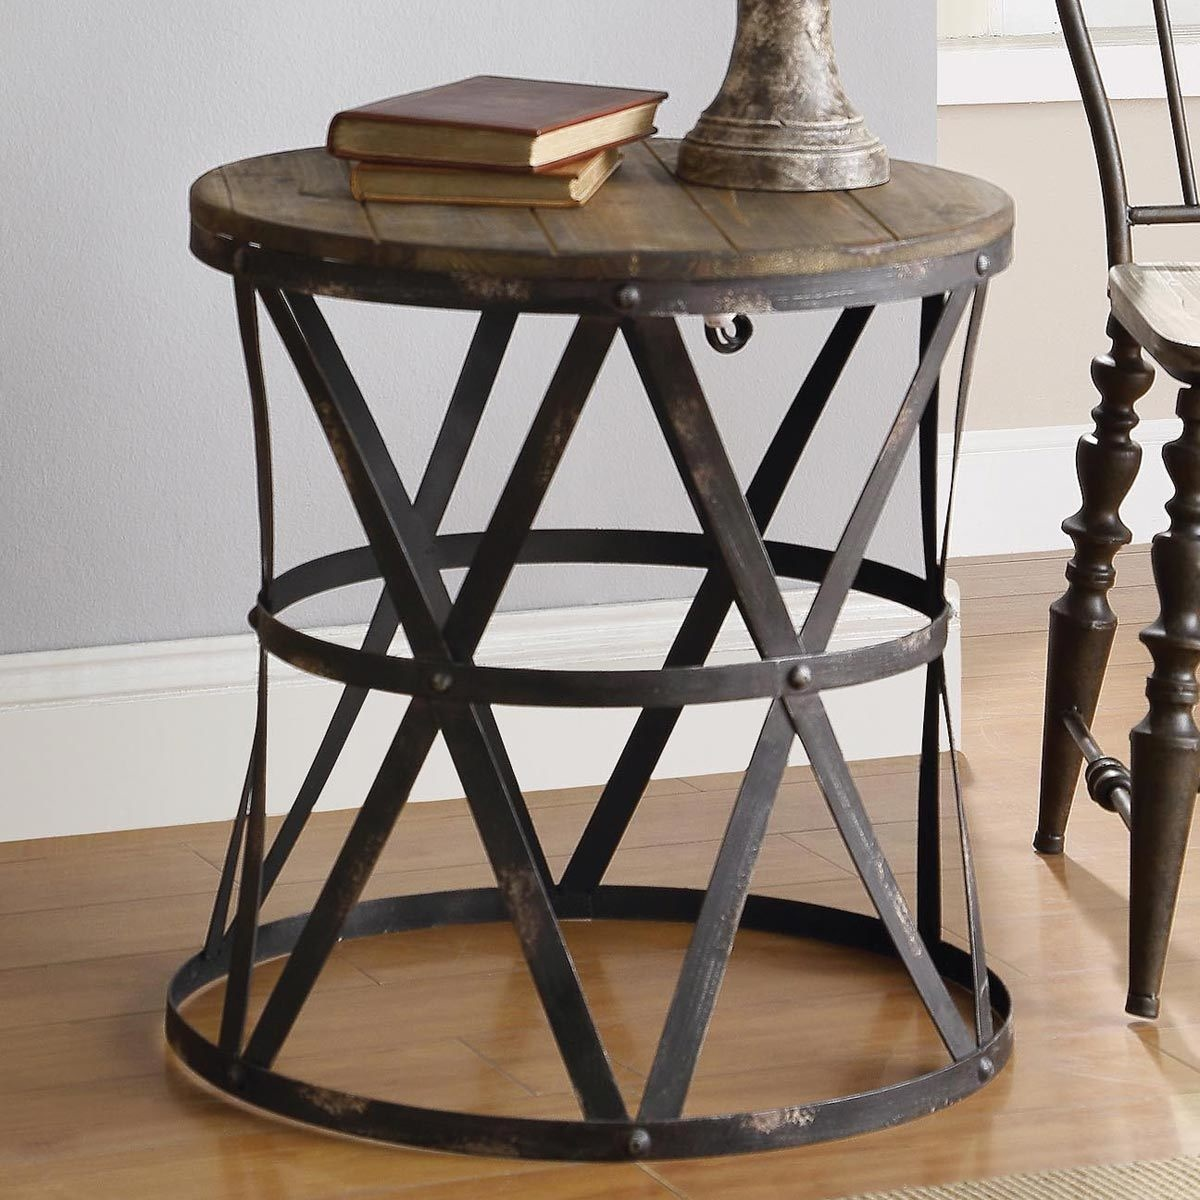 rustic coffee tables and end black forest decor modern side table stratford wicker folding accent bronze shabby chic half moon butterfly lamp entry console ikea center small